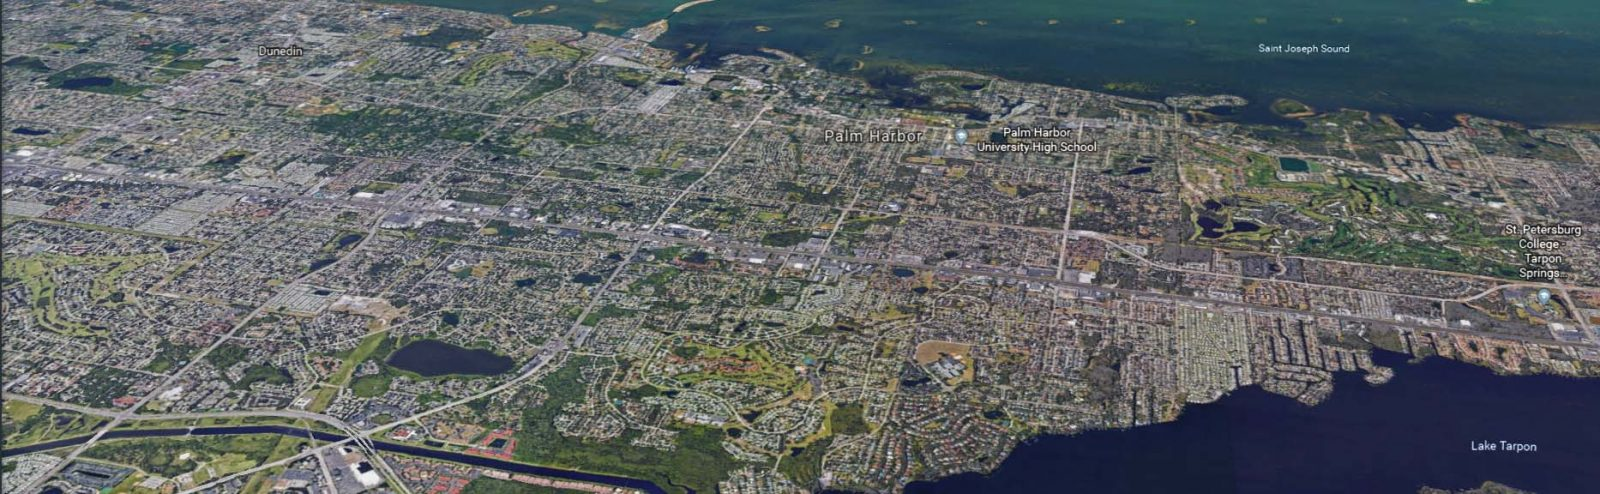 Palm Harbor Aerial View